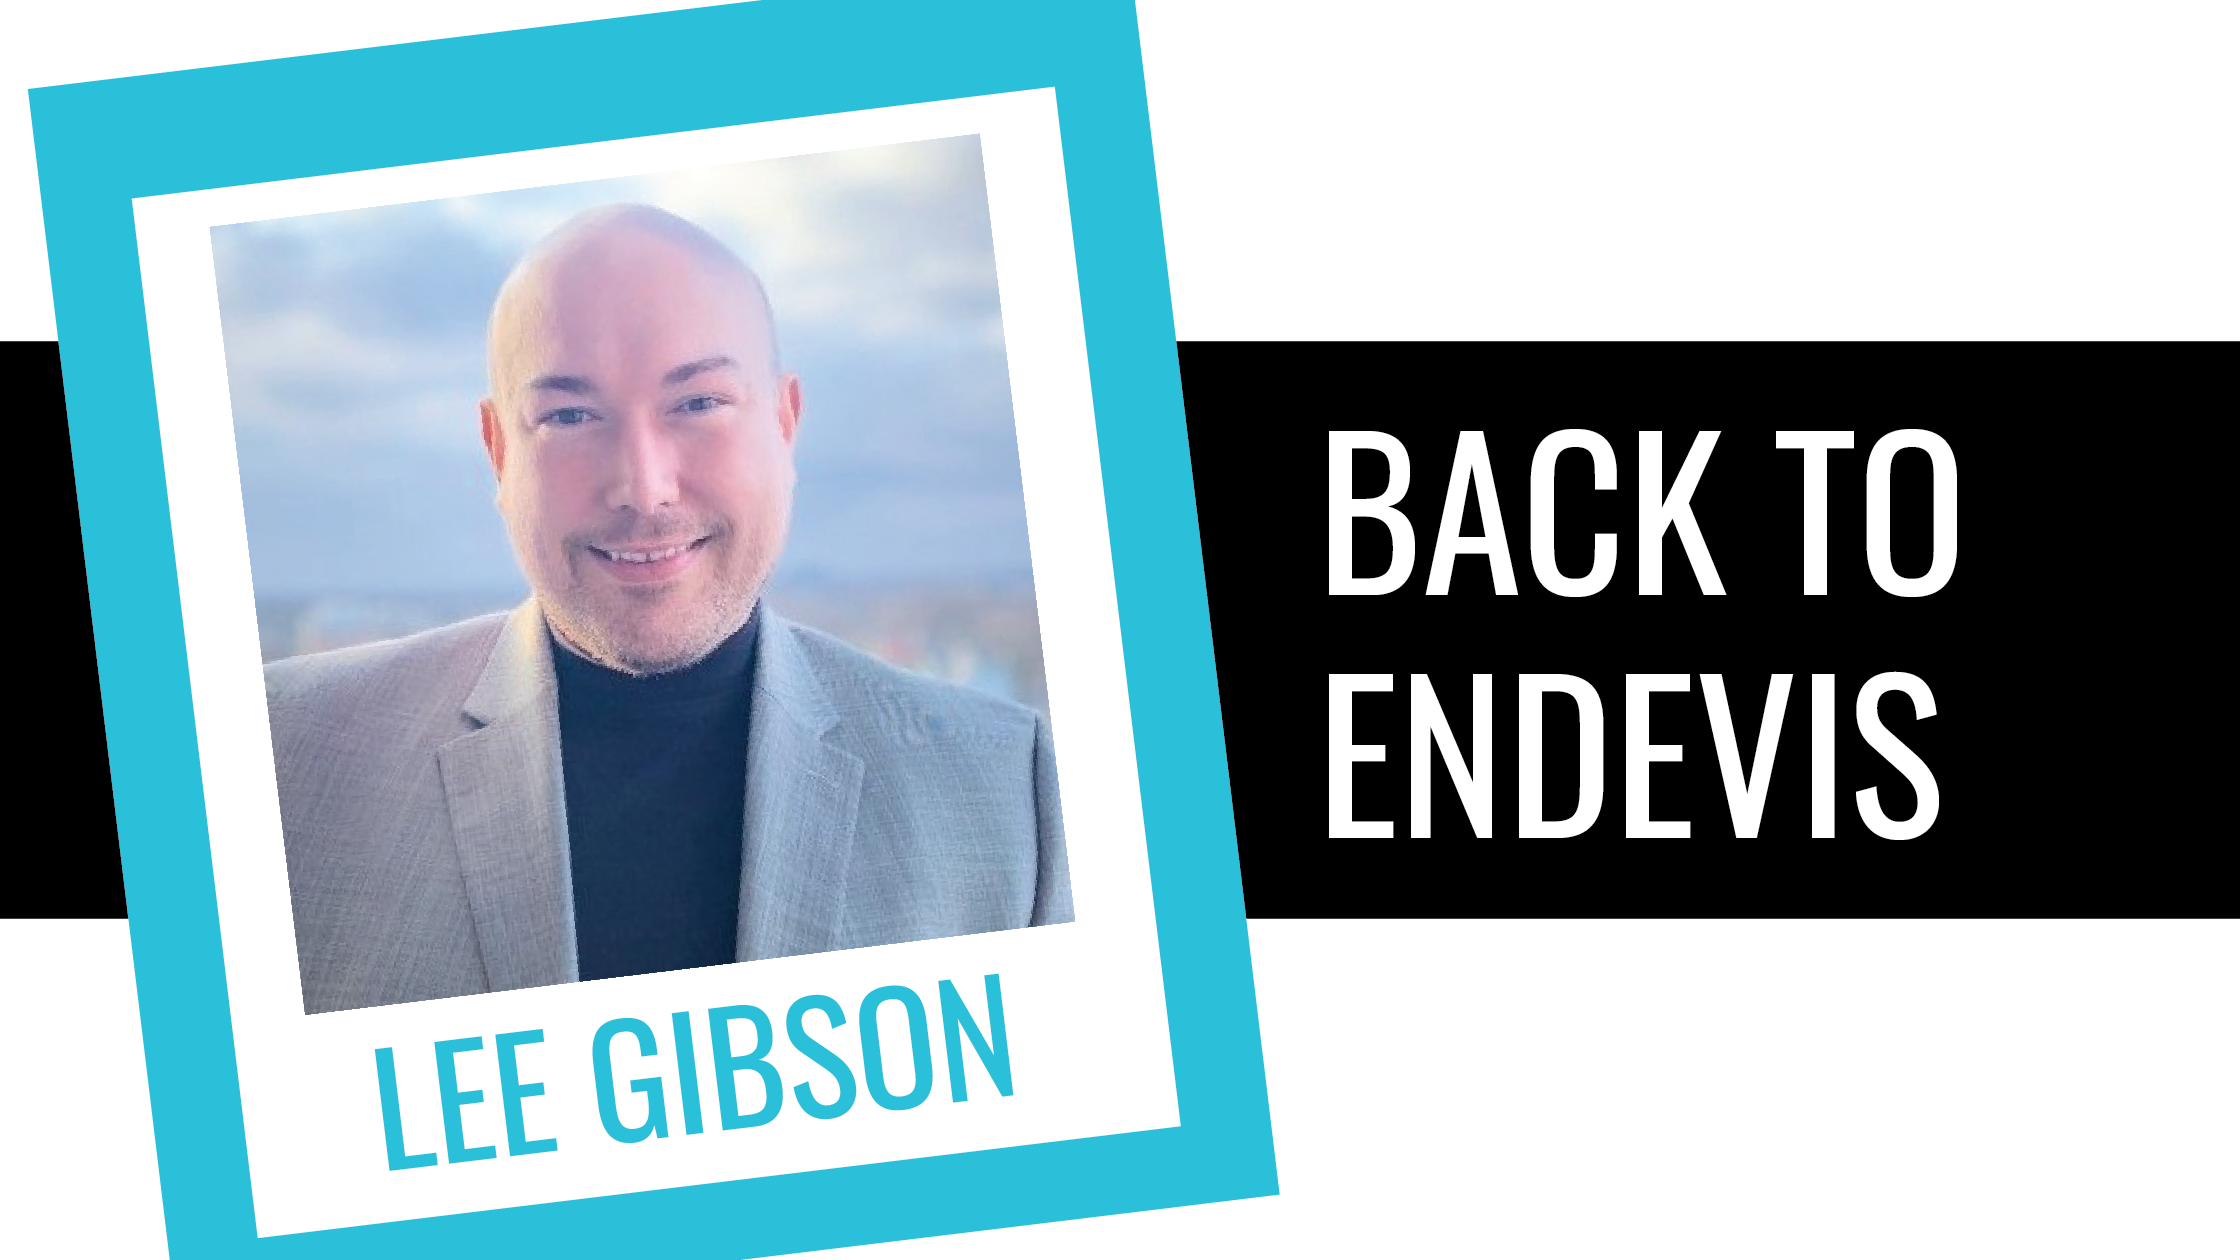 Lee Gibson - Back to endevis